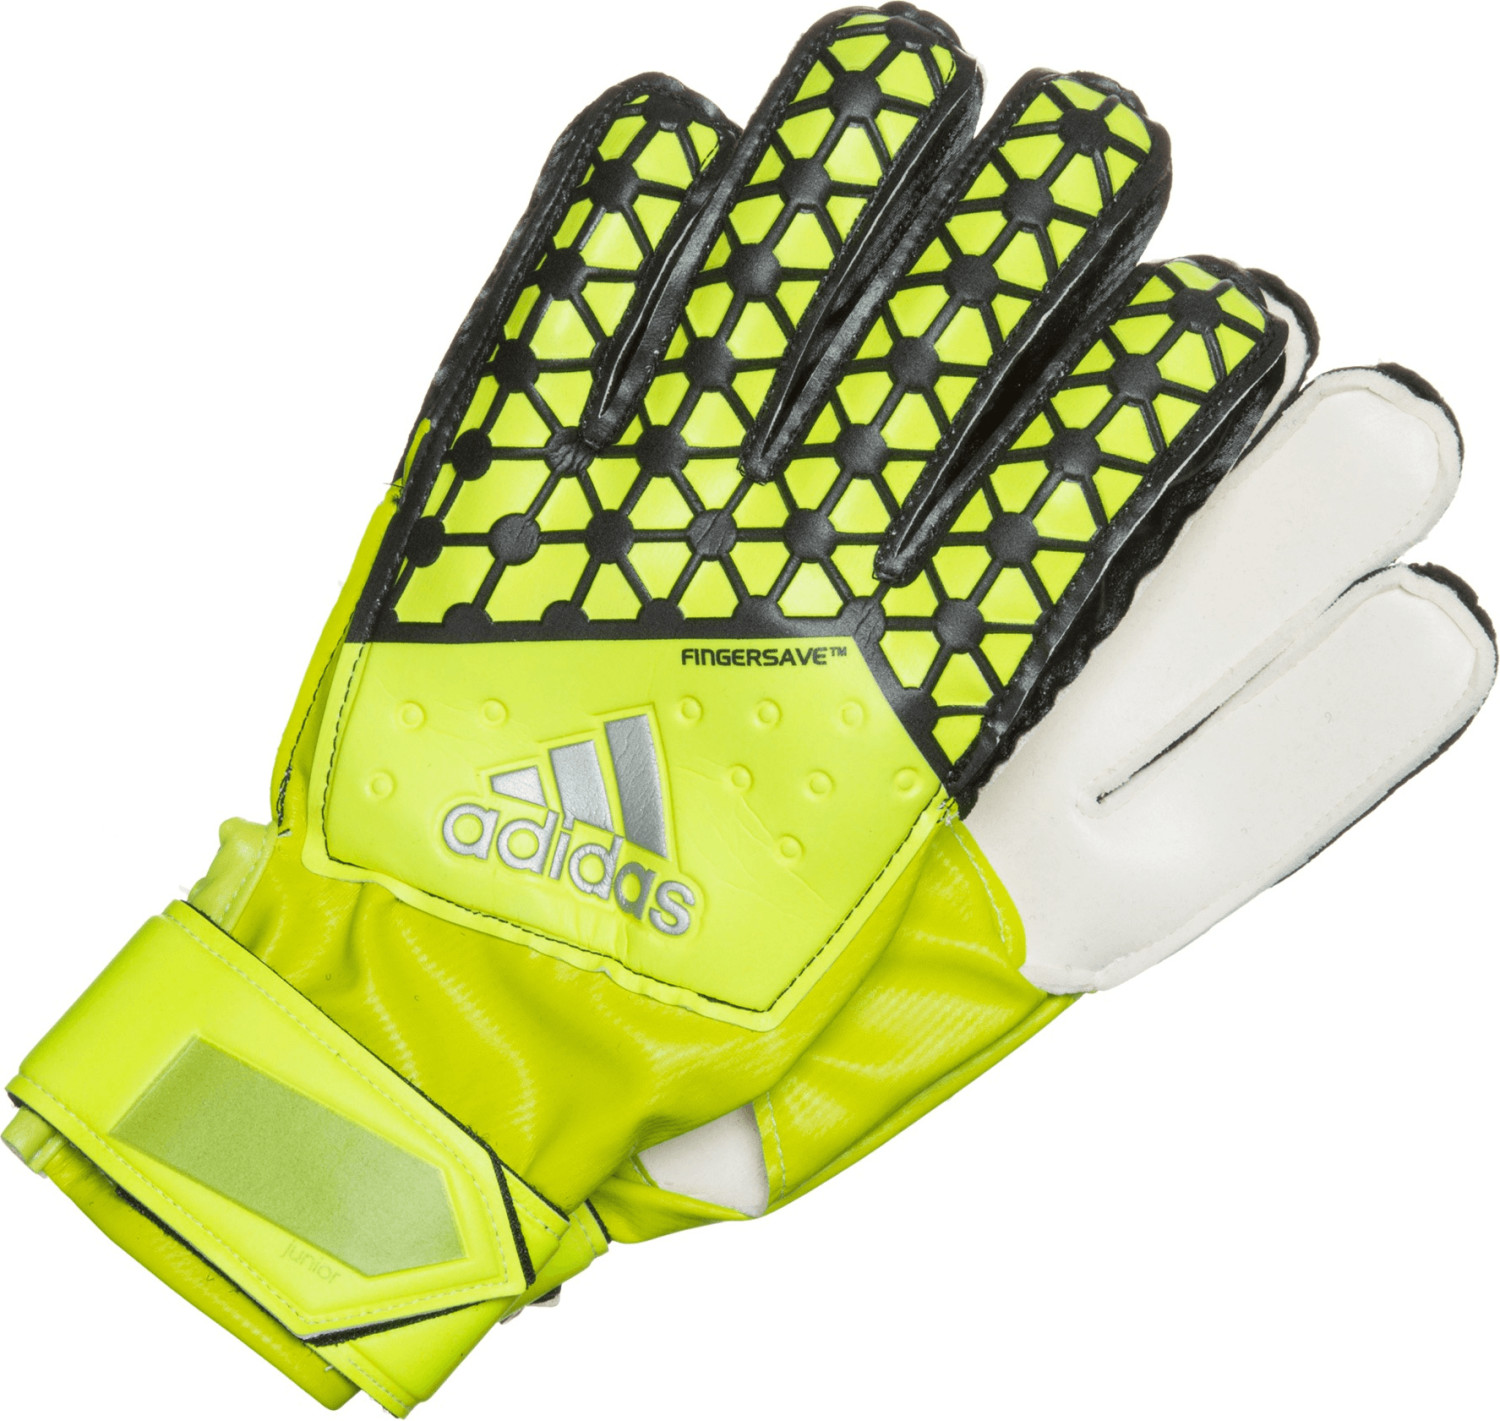 Adidas Ace Replique Fingersave